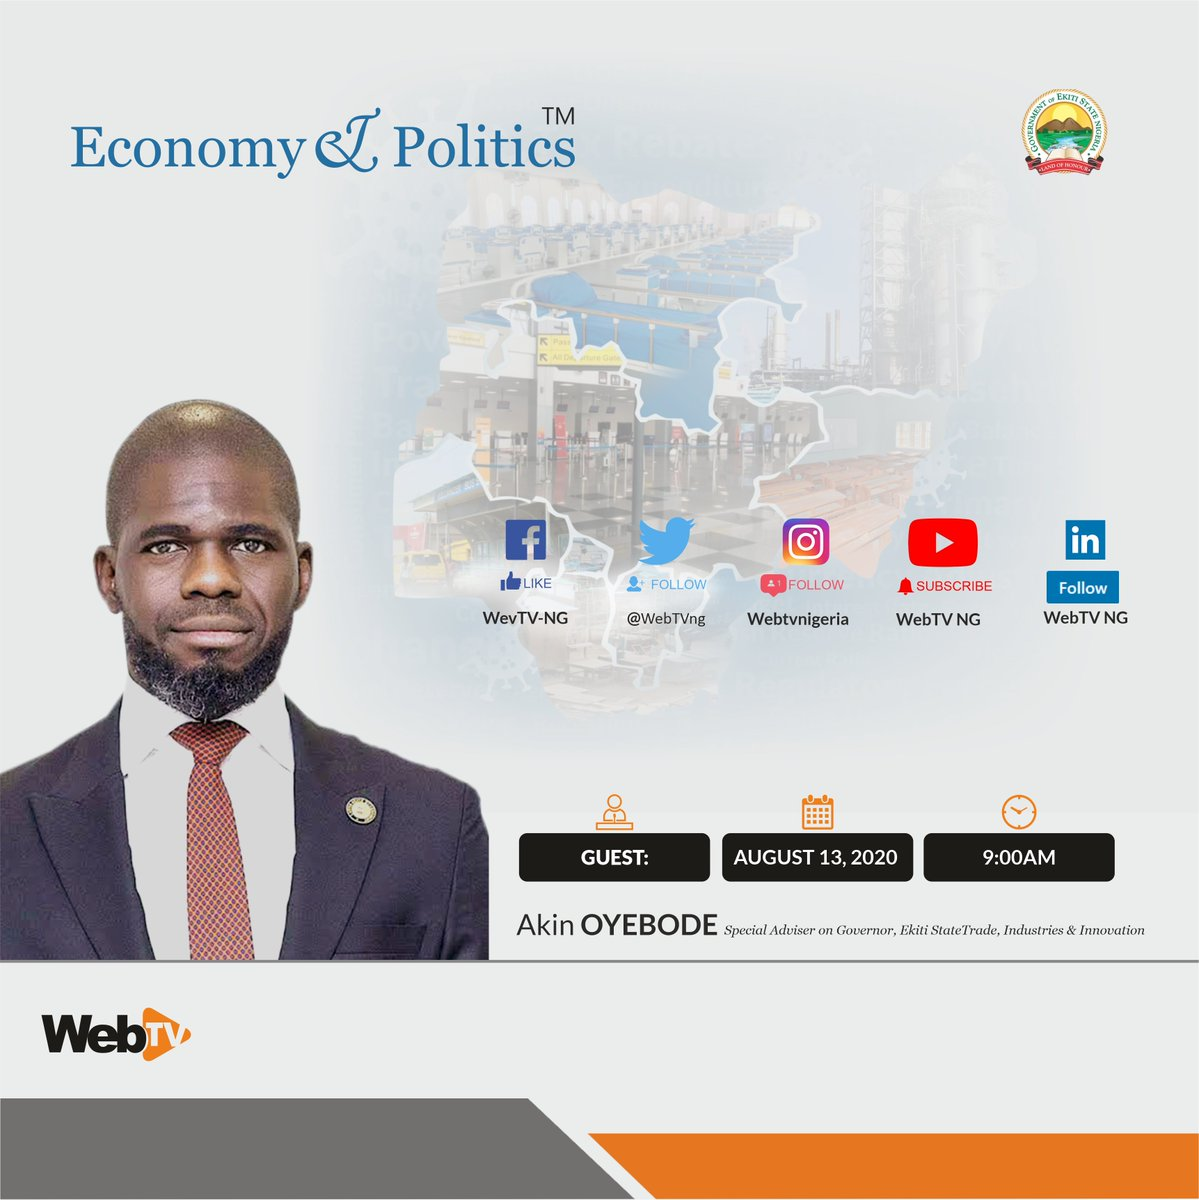 Happening Now! The #EconomyAndPolitics Show with @ecopoliticsNG & the Anchor @ottoabasi1 engaging the guest speaker @AO1379 Mr Akin Oyebode, Special Adviser to the Governor, @ekitistategov on Trade, Industries & Innovation Send your comments through #ASKWebTV #States #Investment https://t.co/lXrFnvnO8c